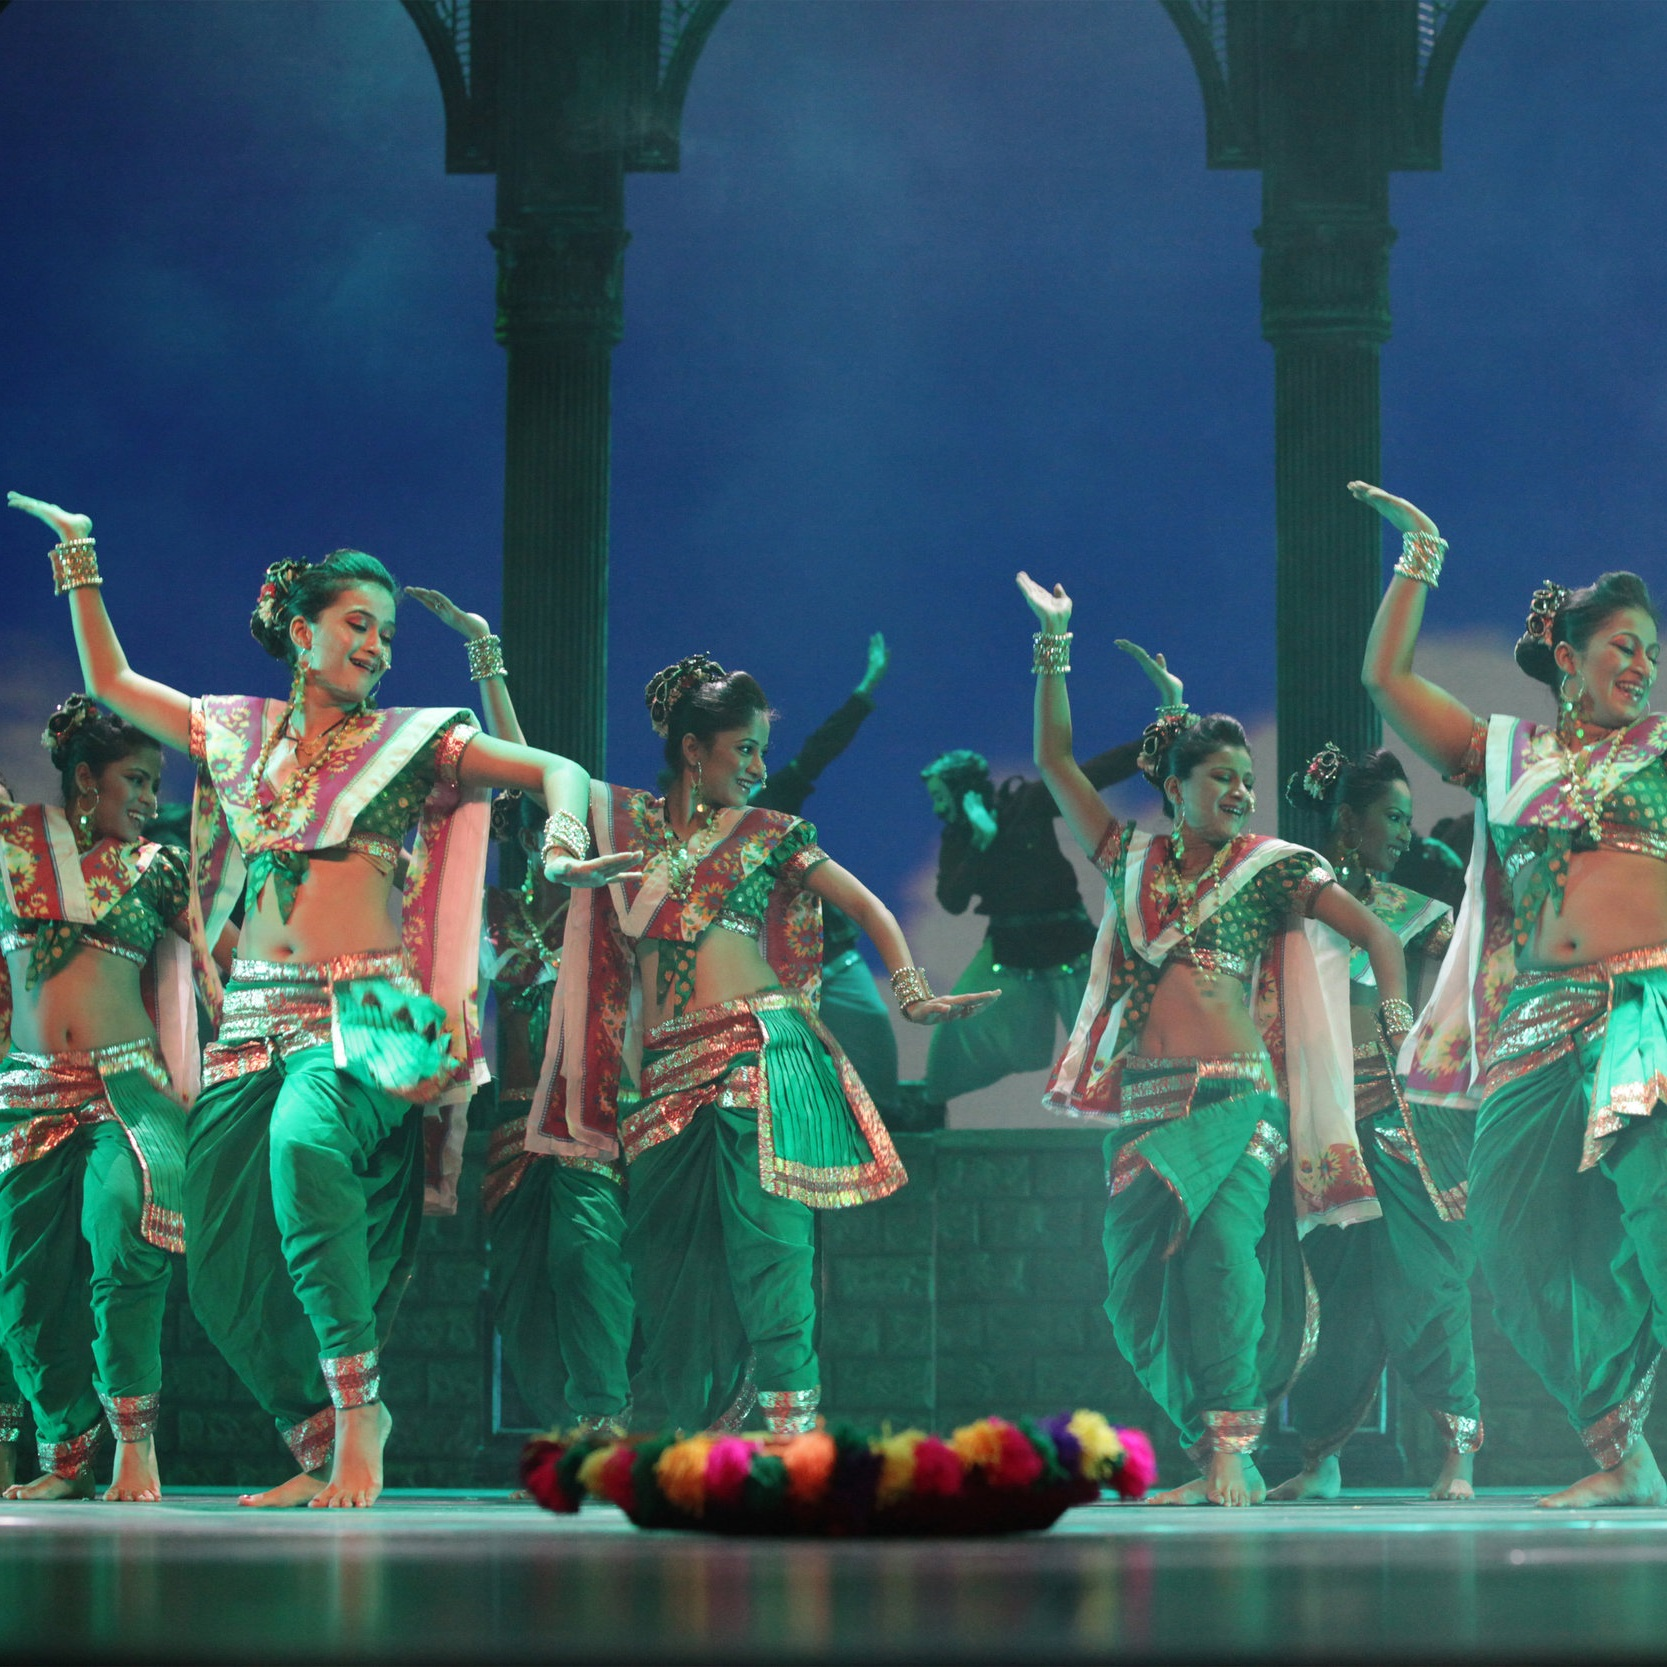 TAJ EXPRESS: BOLLYWOOD MUSICAL REVUE - NOV 23 - DEC 1, 2019BLUMA APPEL THEATREST. LAWRENCE CENTREPRESS RELEASEHI-RES PHOTOSLEARN MORE